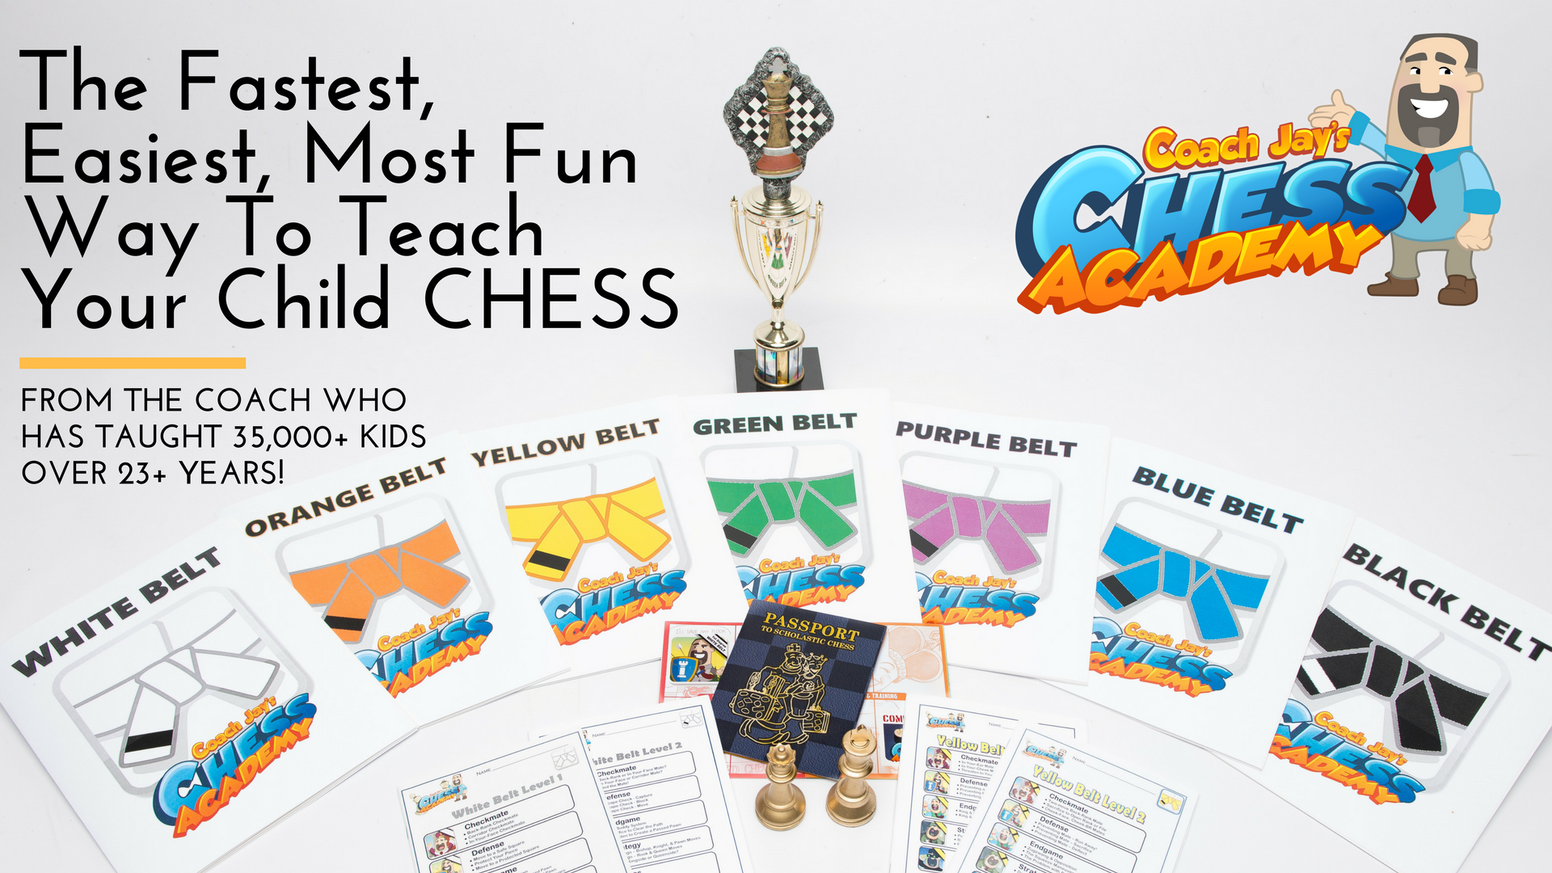 The fastest, easiest, MOST FUN way to learn chess! From the coach who's taught over 35,000 kids to play chess in the past 23+ years. You're never too young (or old!) to begin to reap the lifelong benefits that only chess can bring!